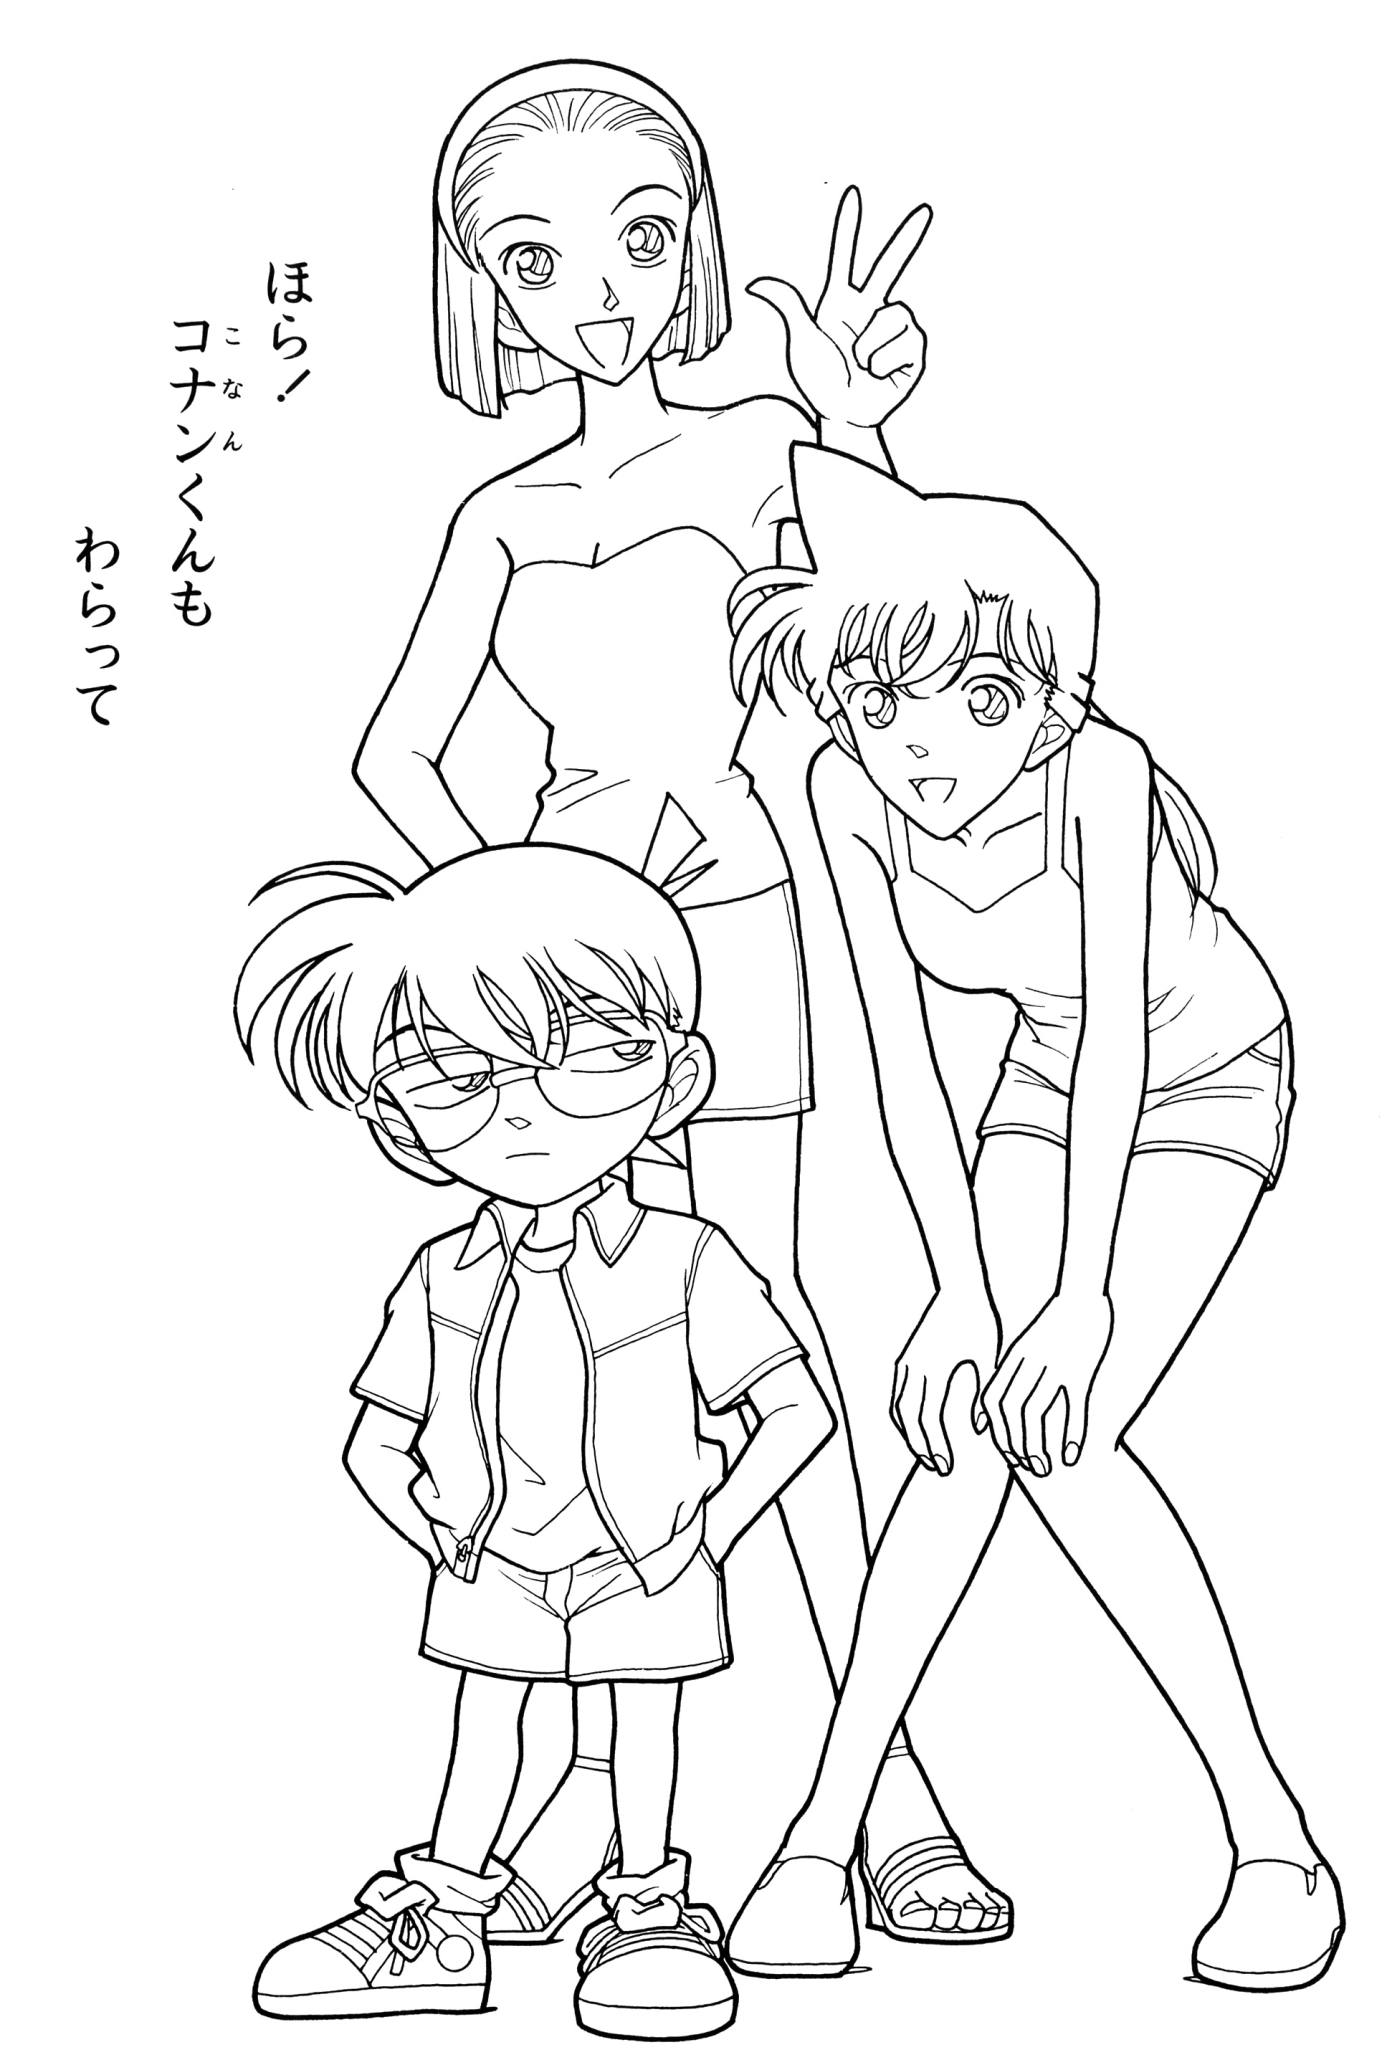 coloring pages of decetive - photo#25